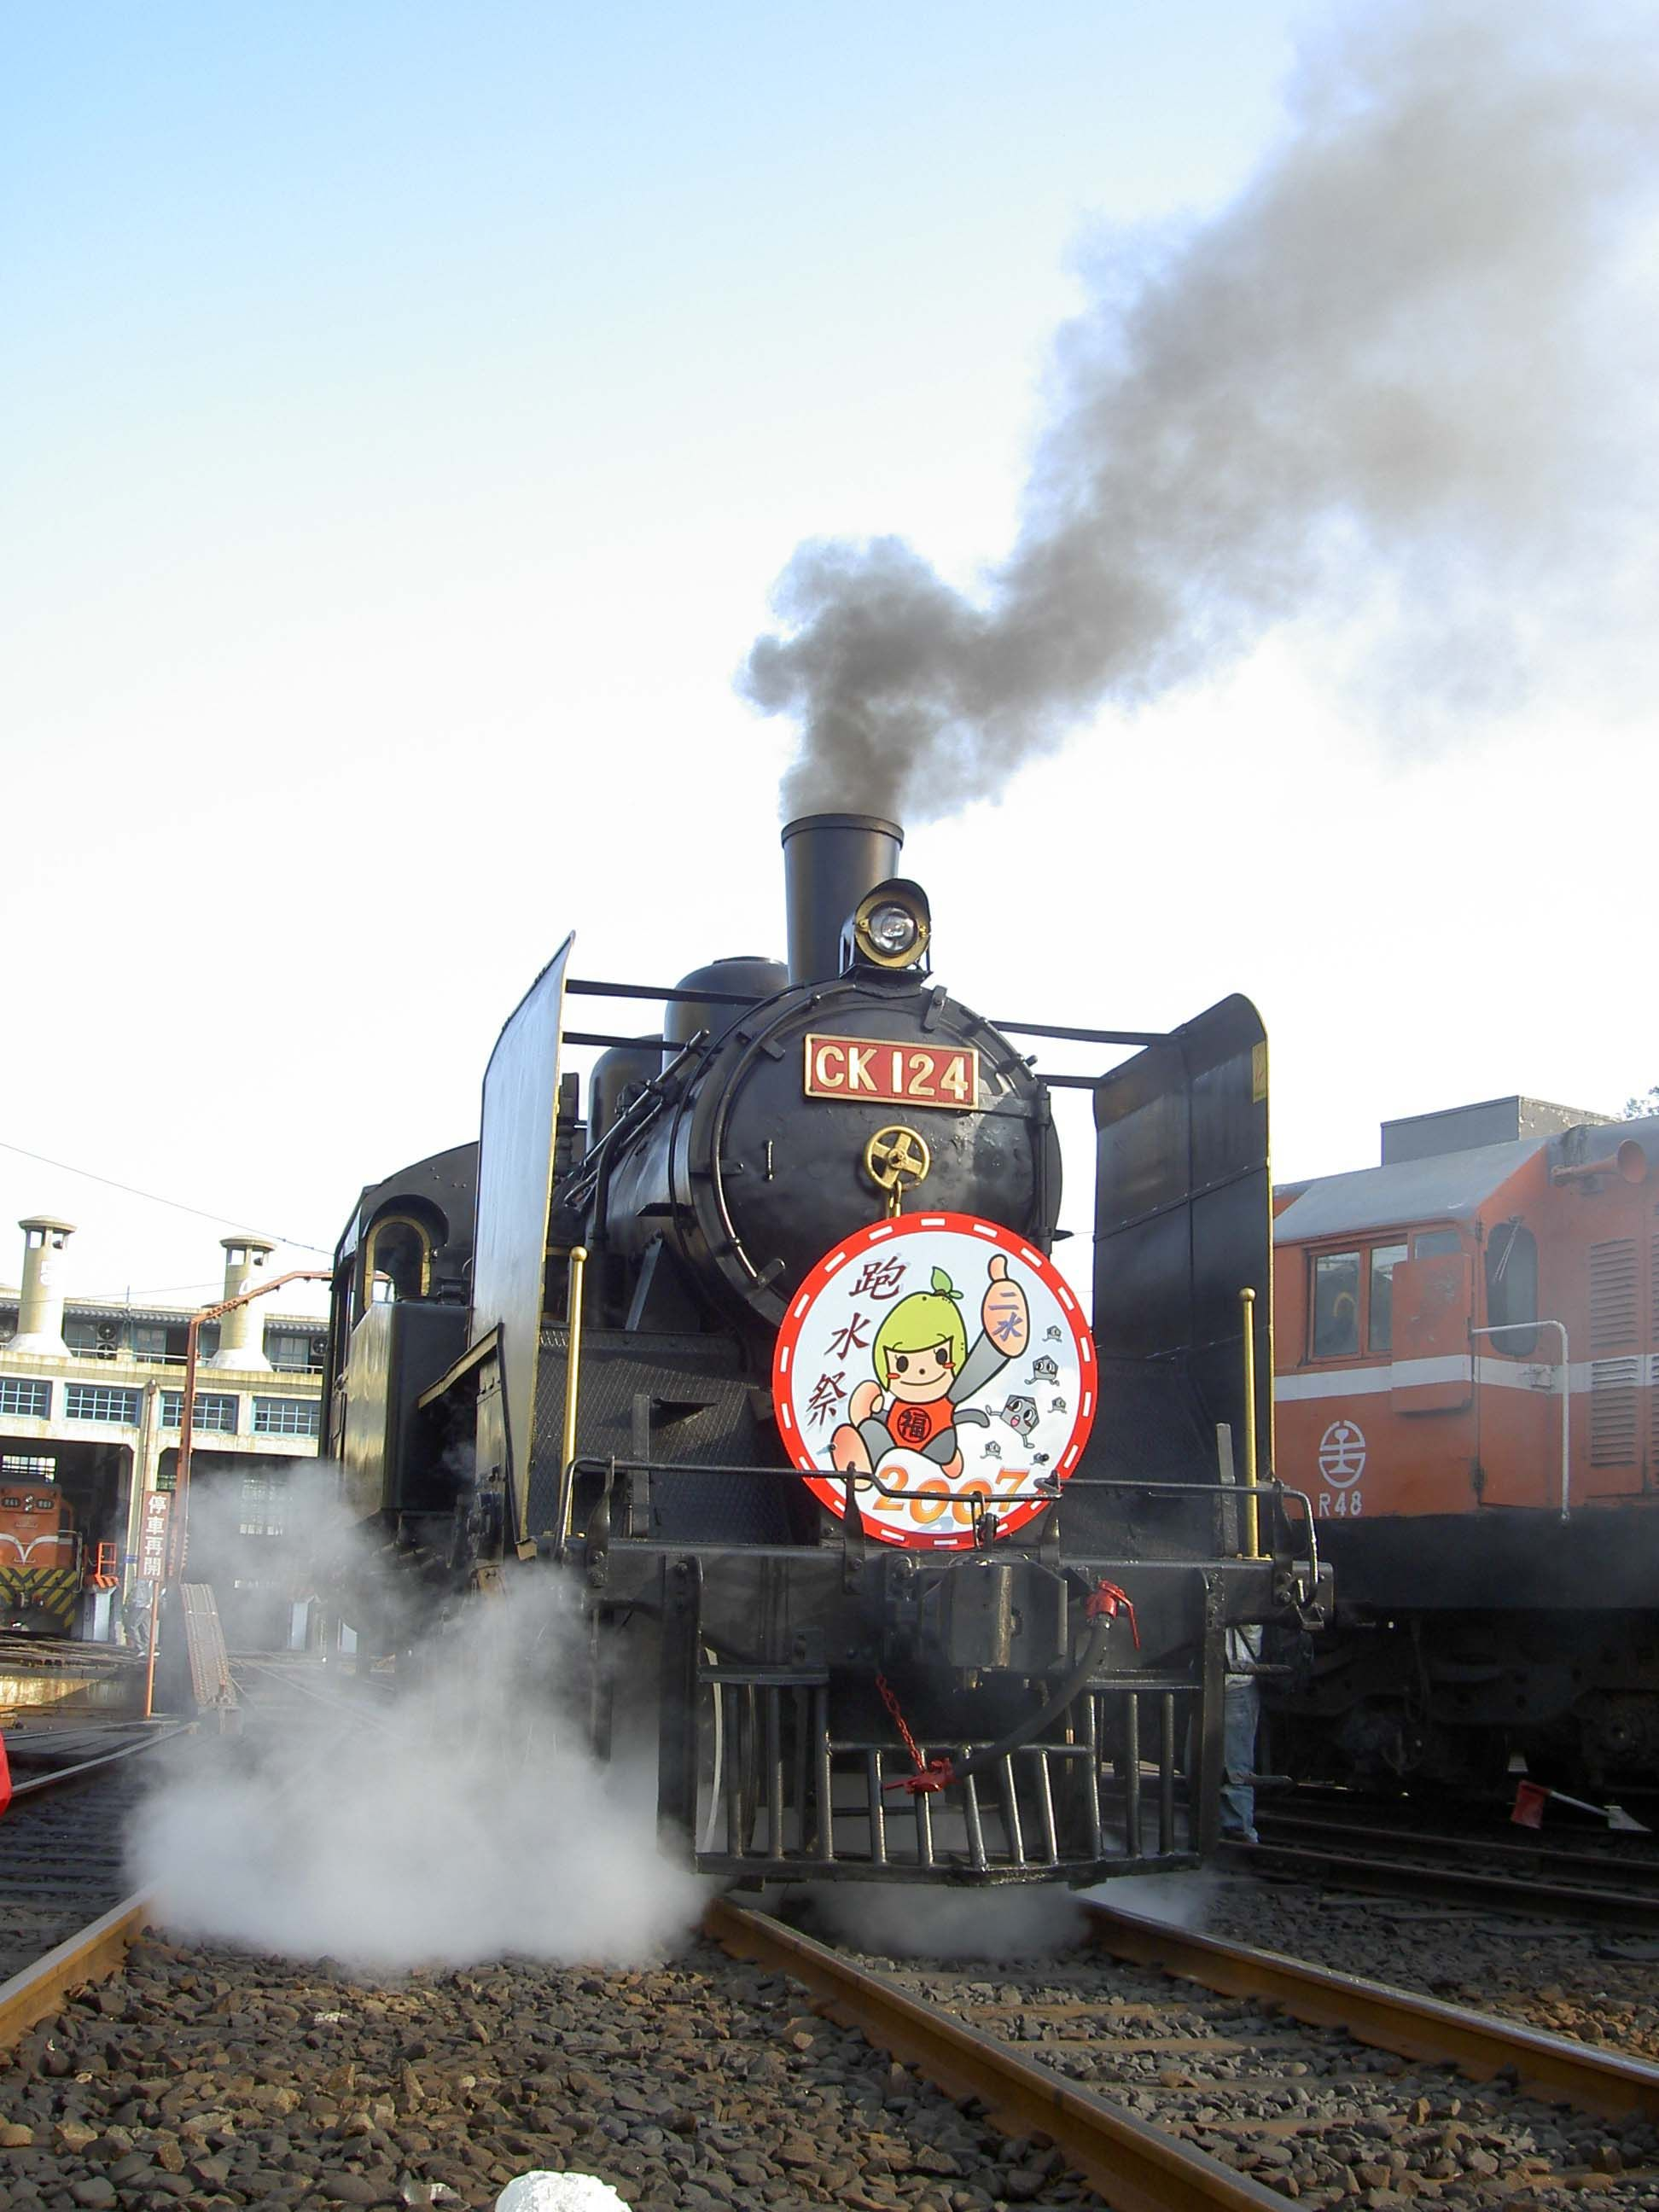 A steam locomotive arrives at Yuanchuan Station on the Chichi branch line.